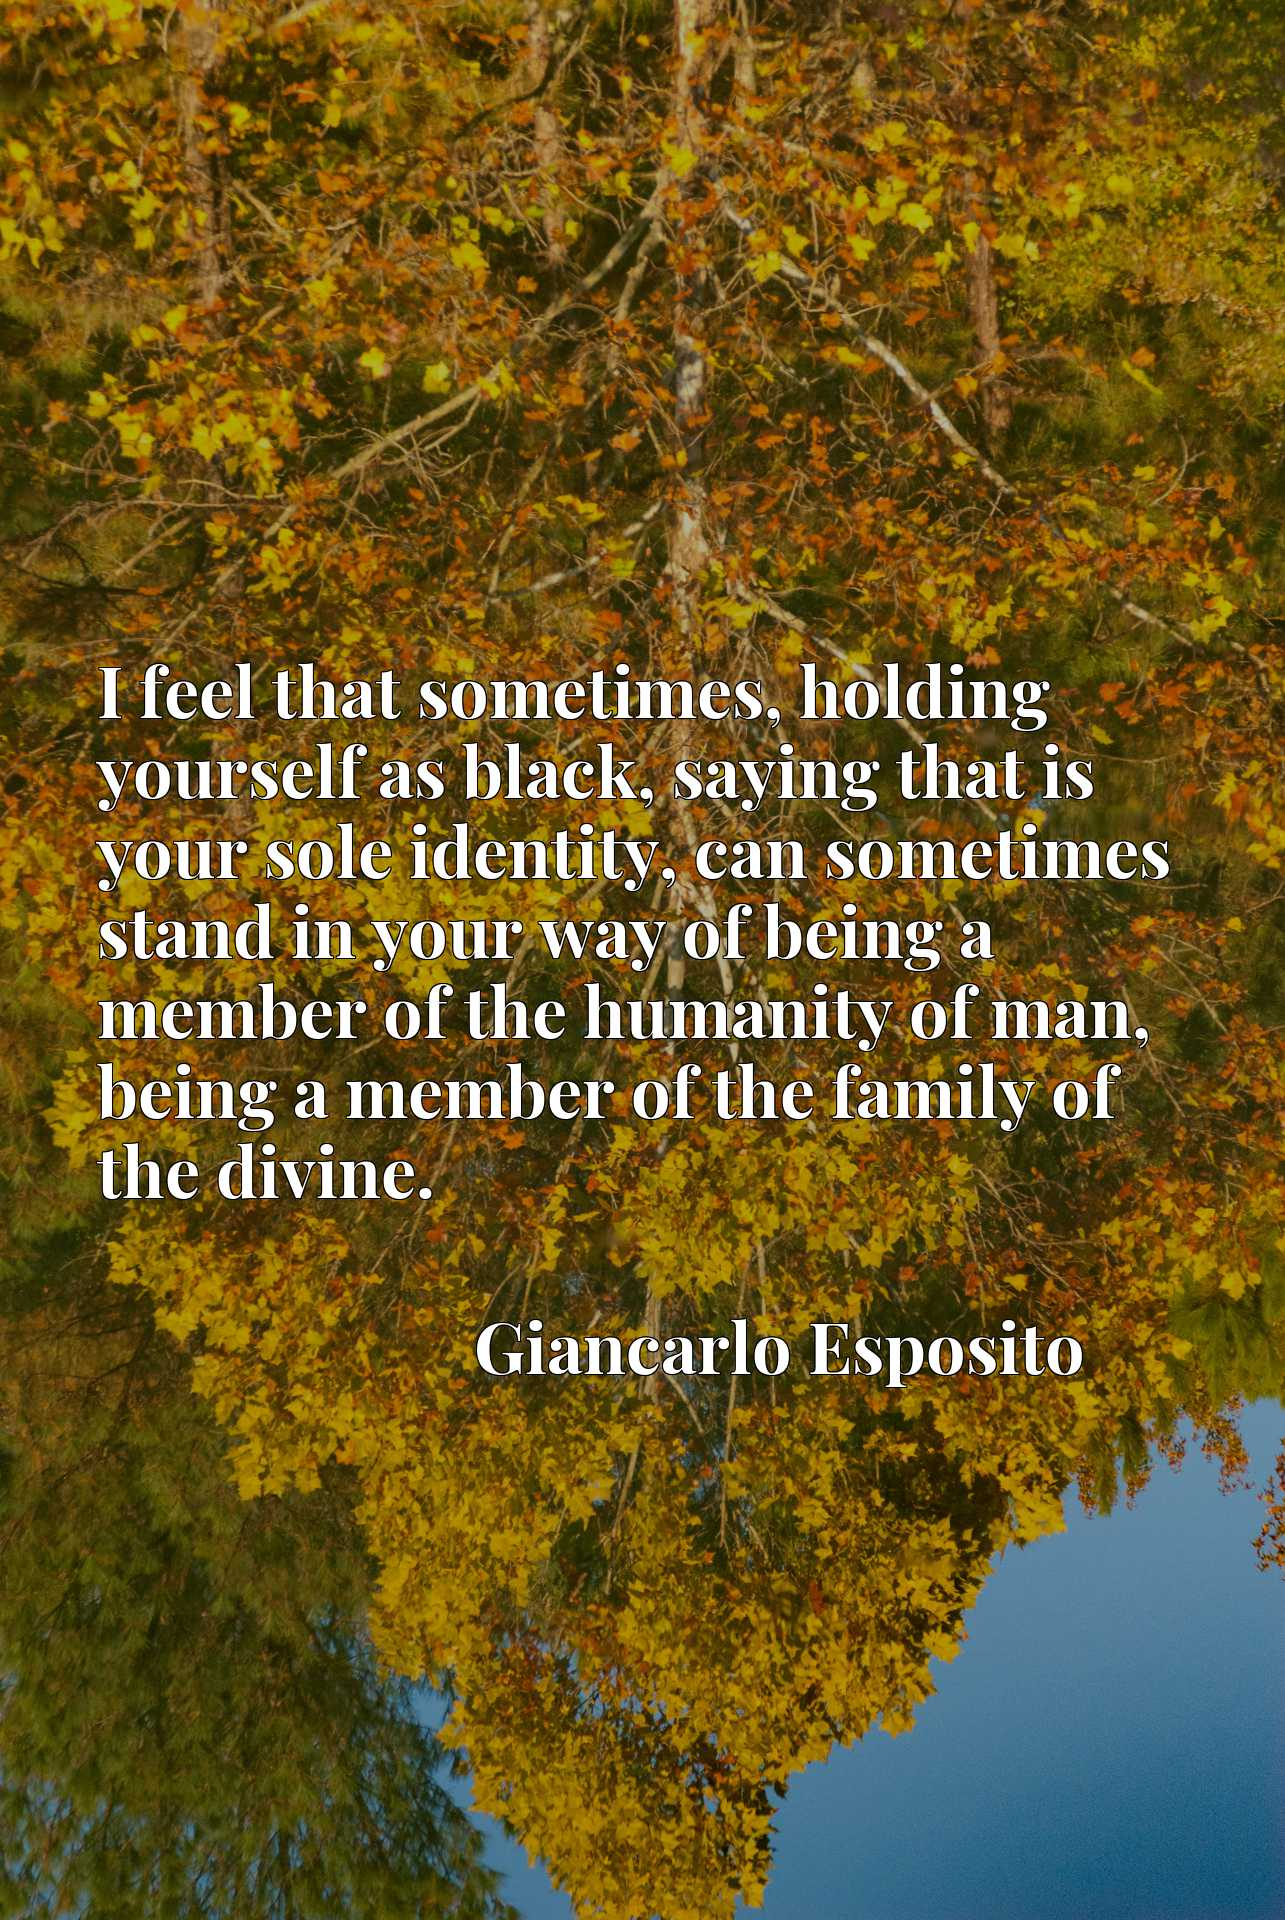 I feel that sometimes, holding yourself as black, saying that is your sole identity, can sometimes stand in your way of being a member of the humanity of man, being a member of the family of the divine.